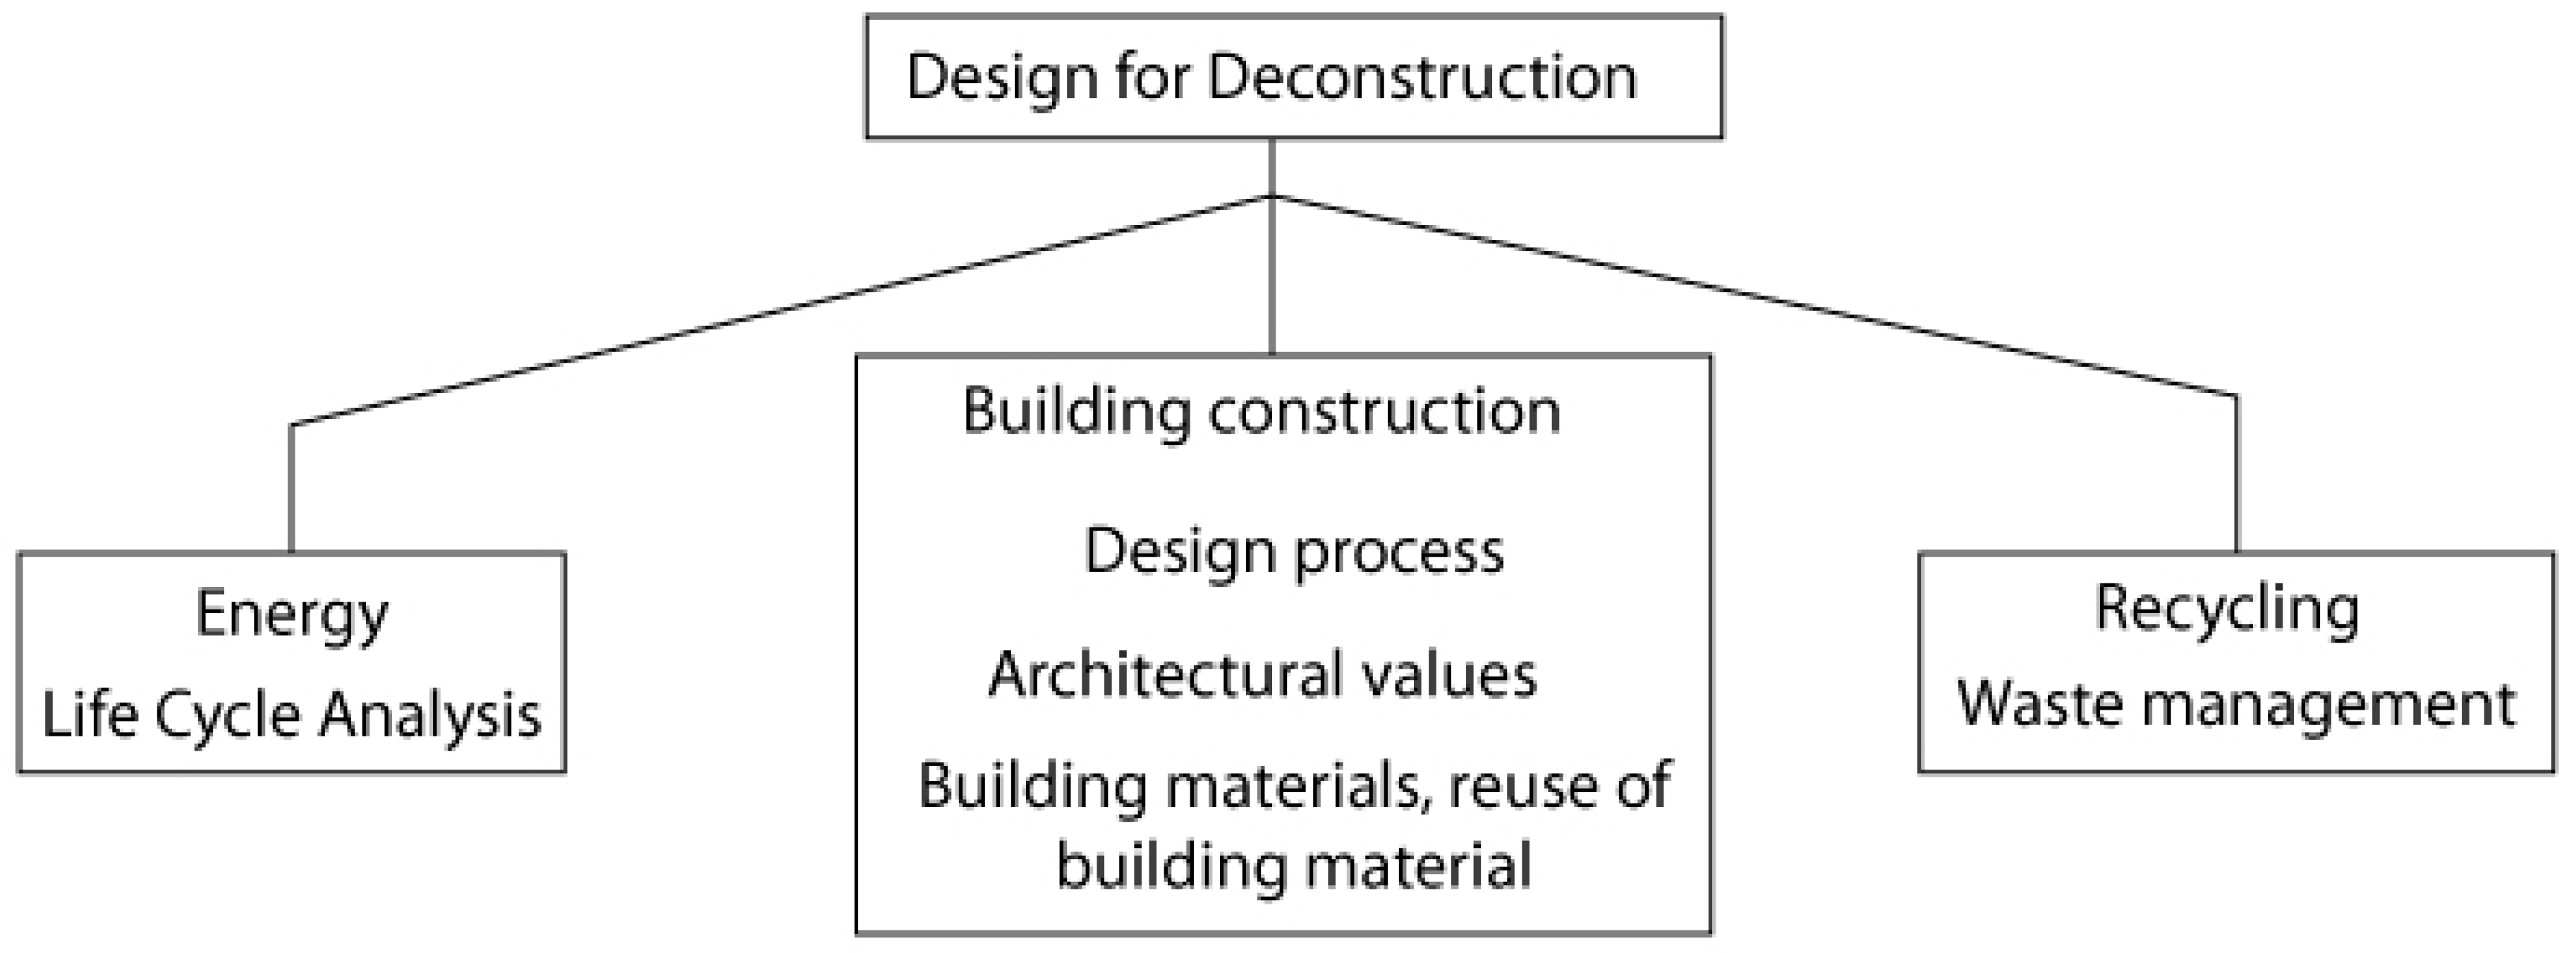 Buildings Free Full Text Design For Deconstruction In